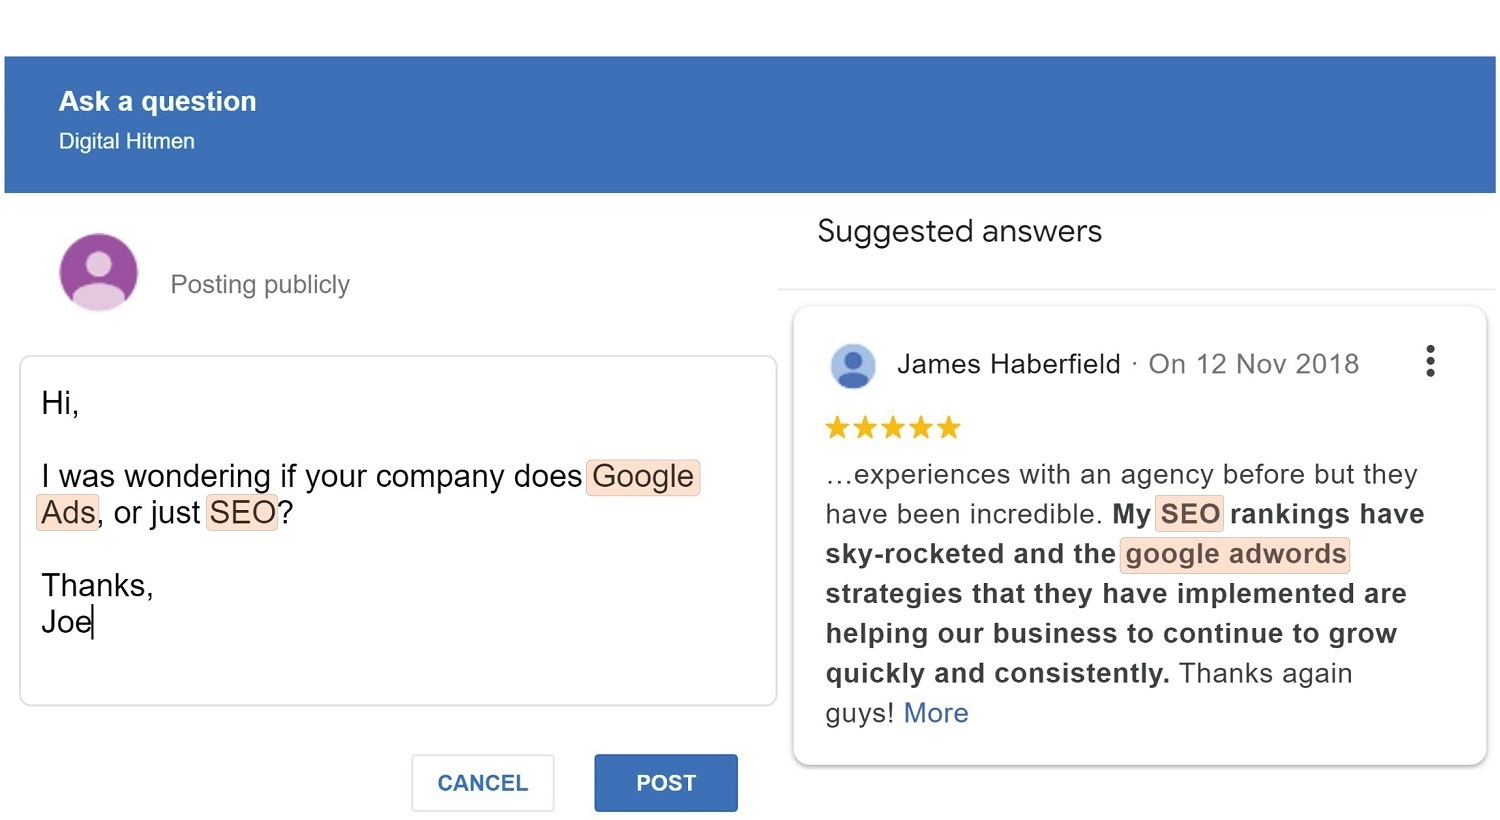 A Google My Business customer asks a direction question to the business owner